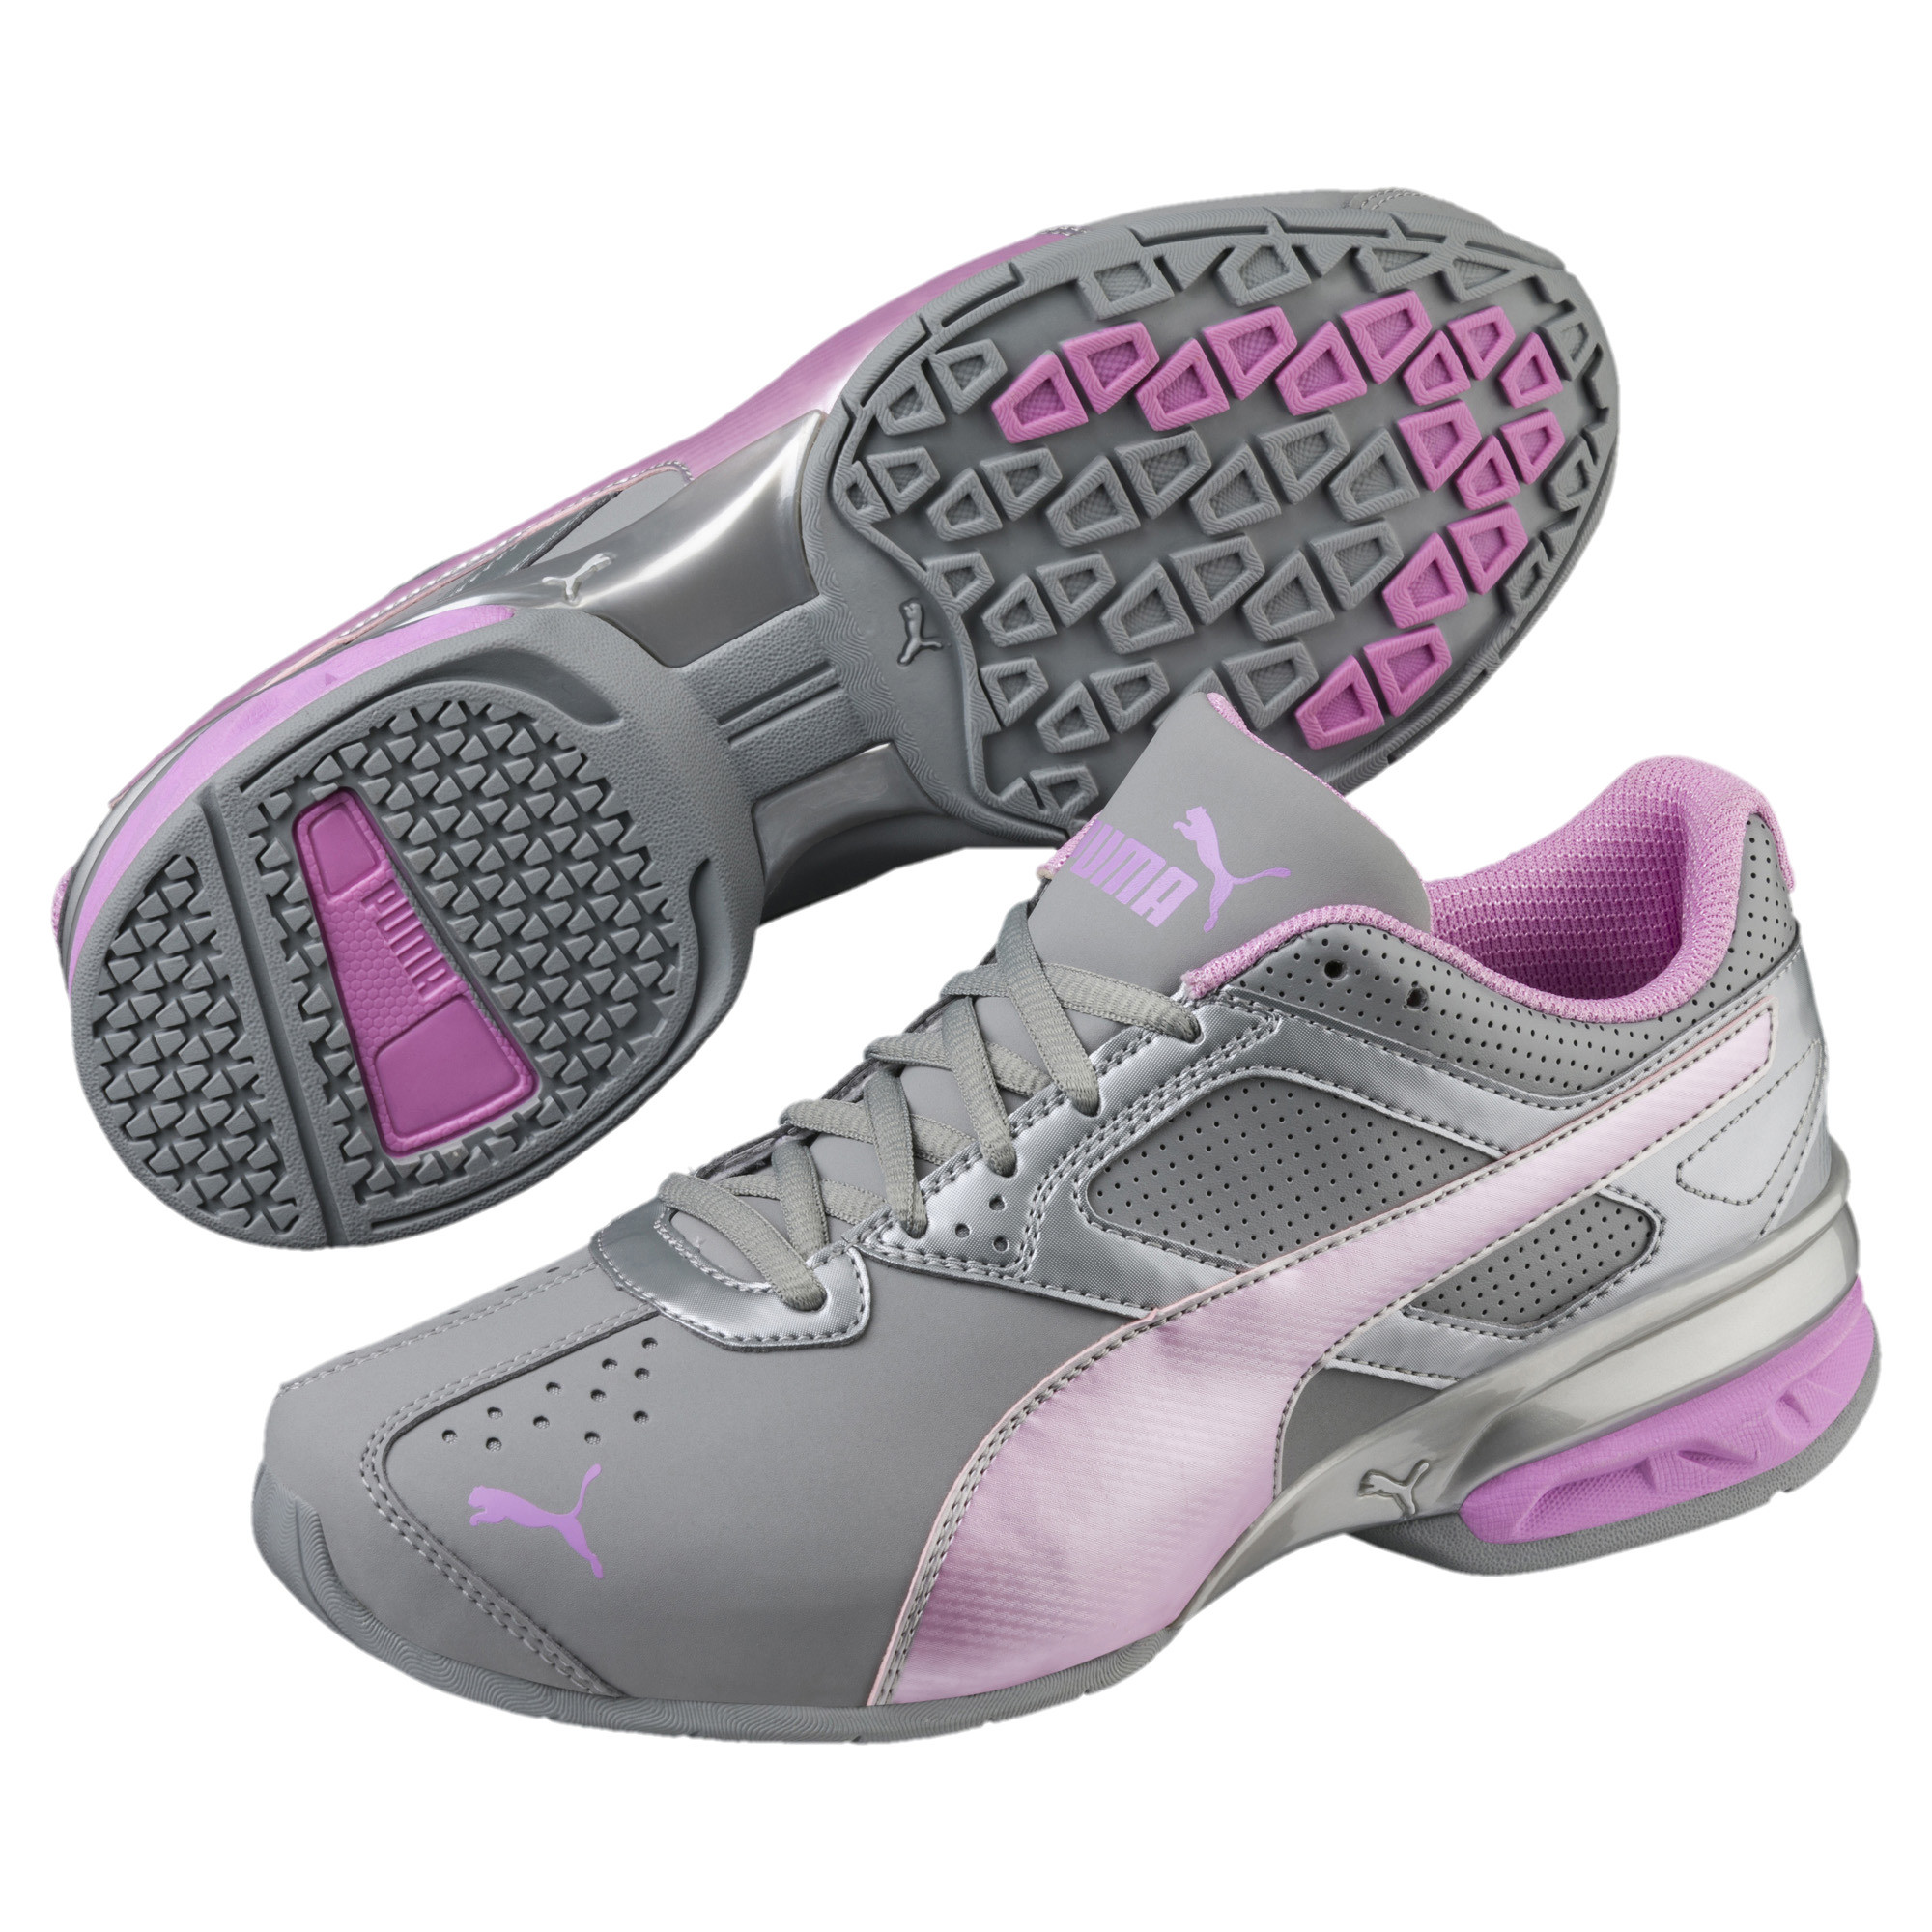 PUMA-Tazon-6-FM-Women-039-s-Sneakers-Women-Shoe-Running thumbnail 13